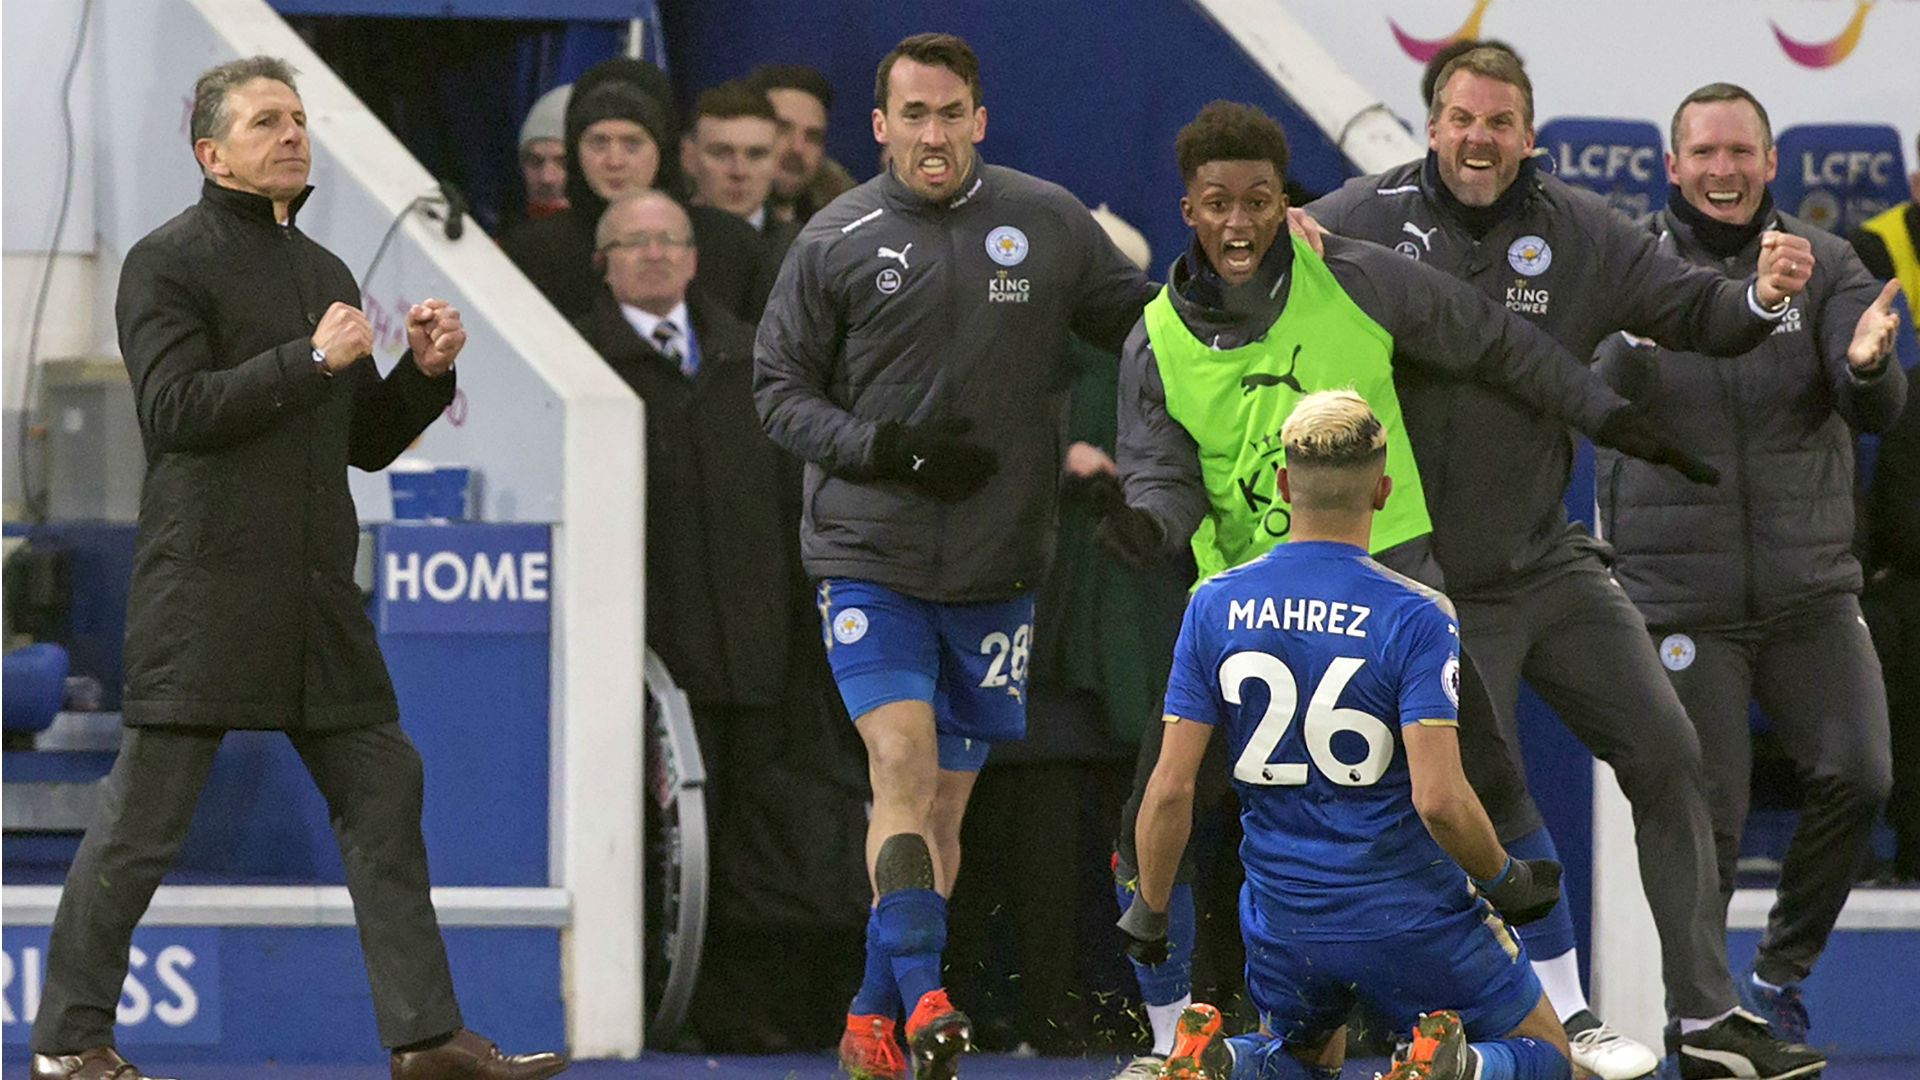 Nigeria star Ndidi is Leicester's most consistent player - Puel